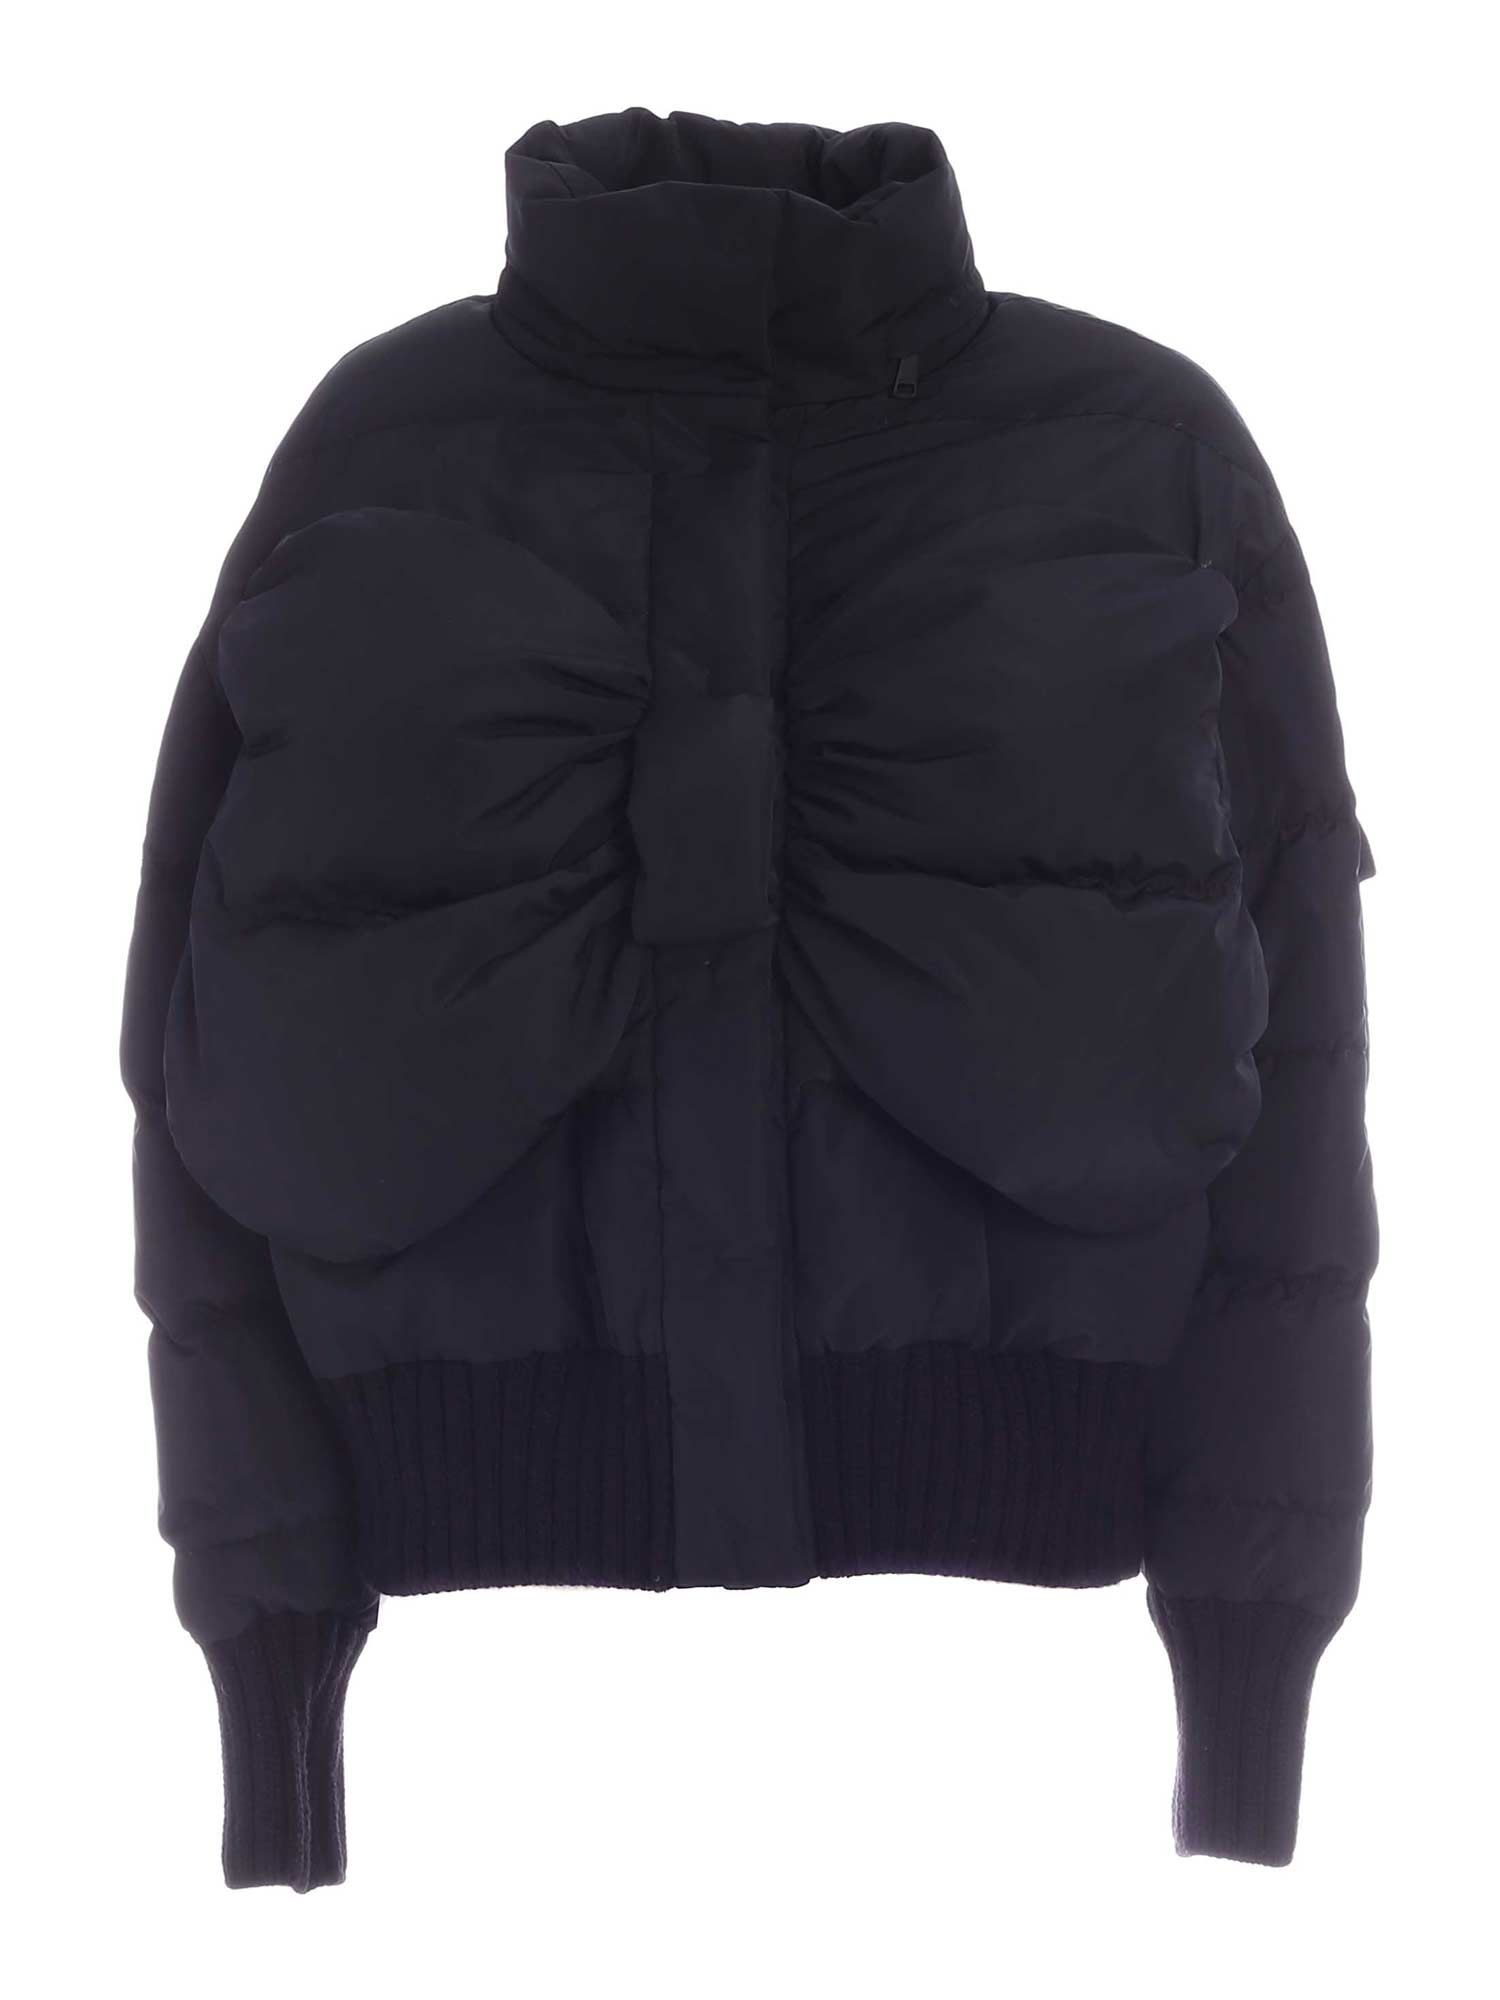 Vivetta BOW DOWN JACKET IN BLACK